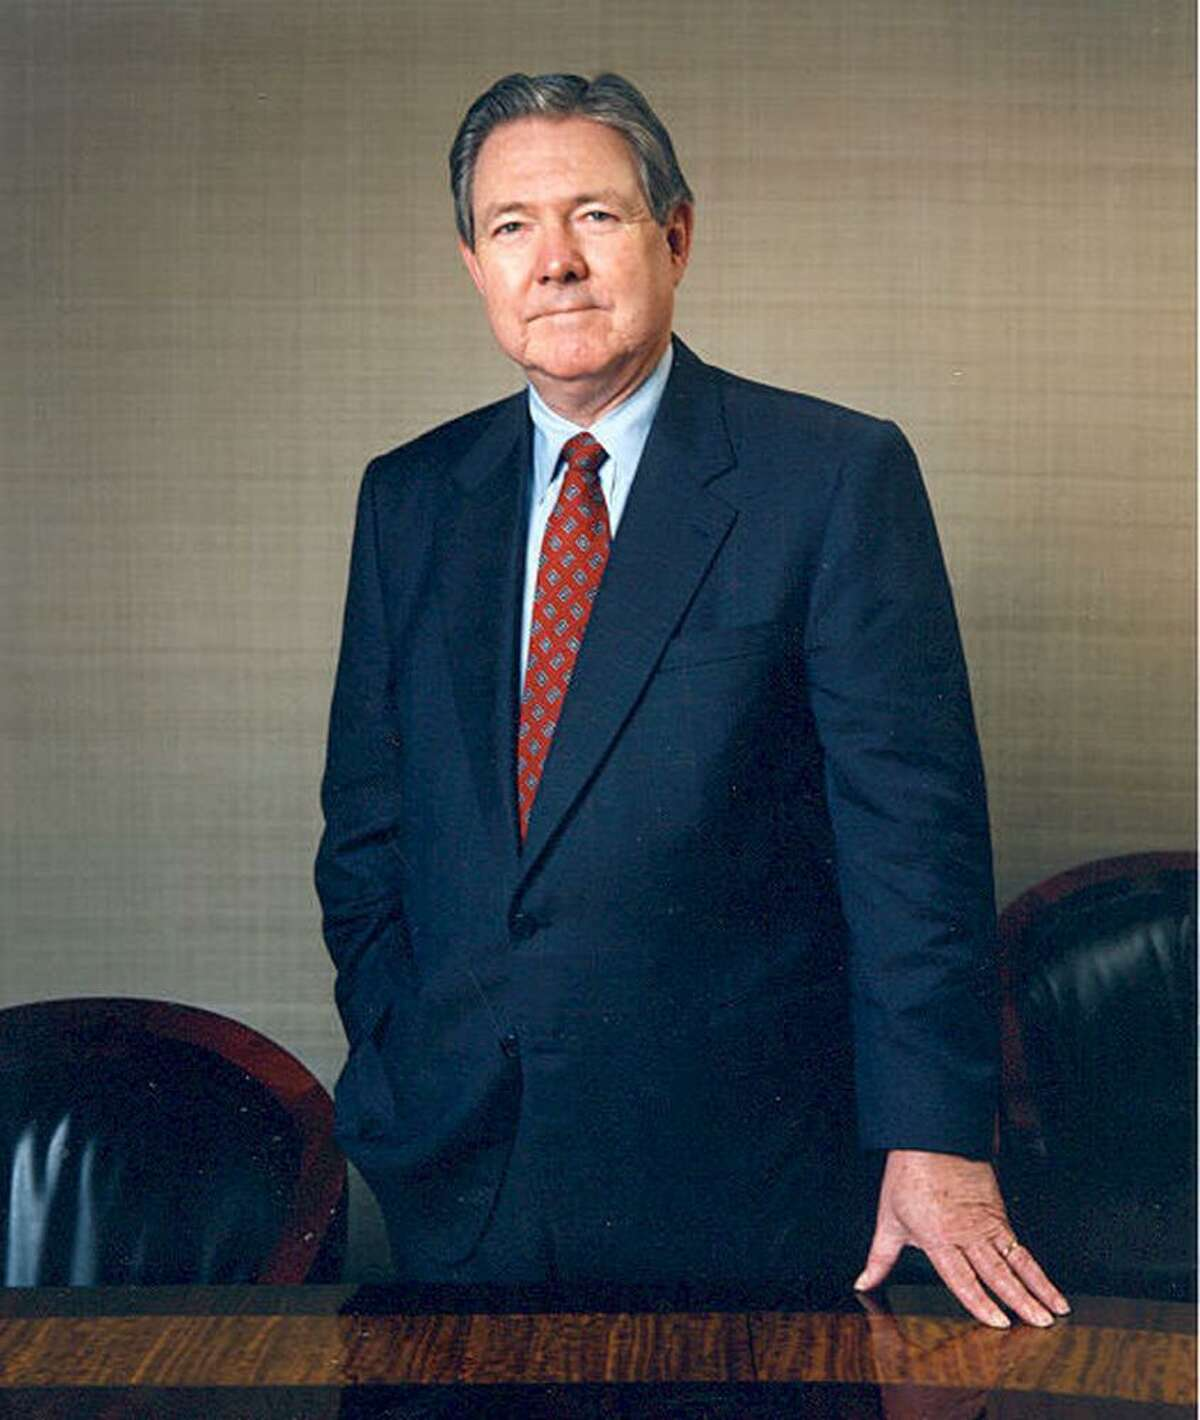 FRANK A. BENNACK, JR.(pictured) announced that he would be retiring from his post as president and CEO of The Hearst Corporation, as of May 31, 2002. His successor will be Victor F. Ganzi. PHOTO COURTESY OF THE HEARST CORP.